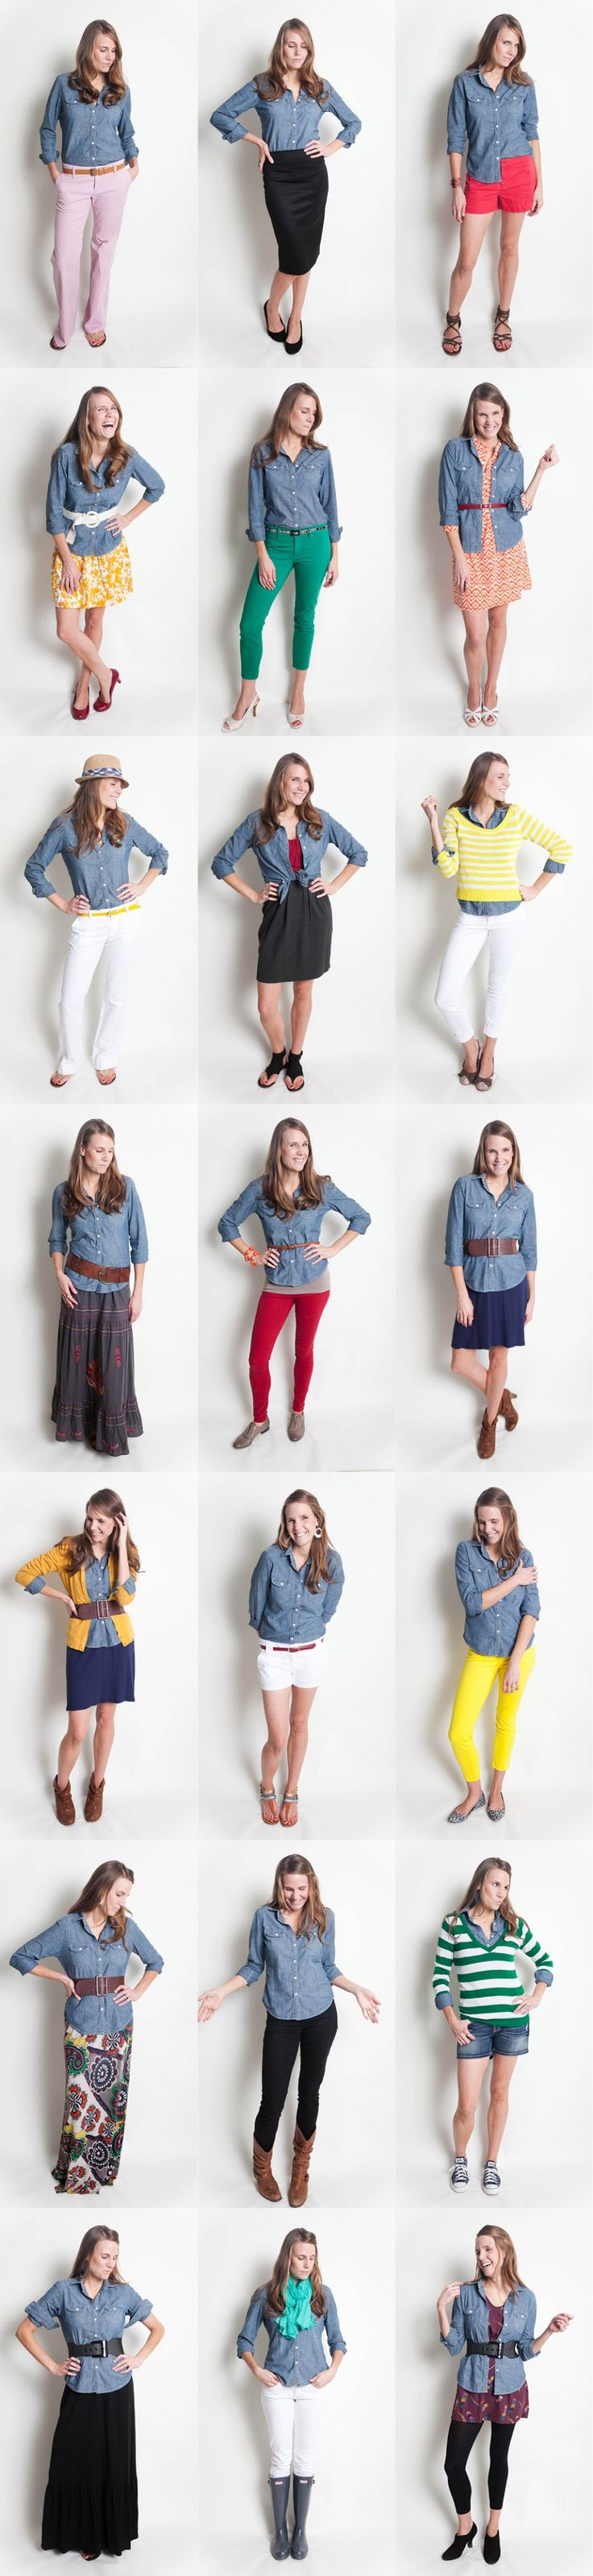 she is killing me with all her awesome mix & match projects - allow me to introduce you to the chambray shirt project.